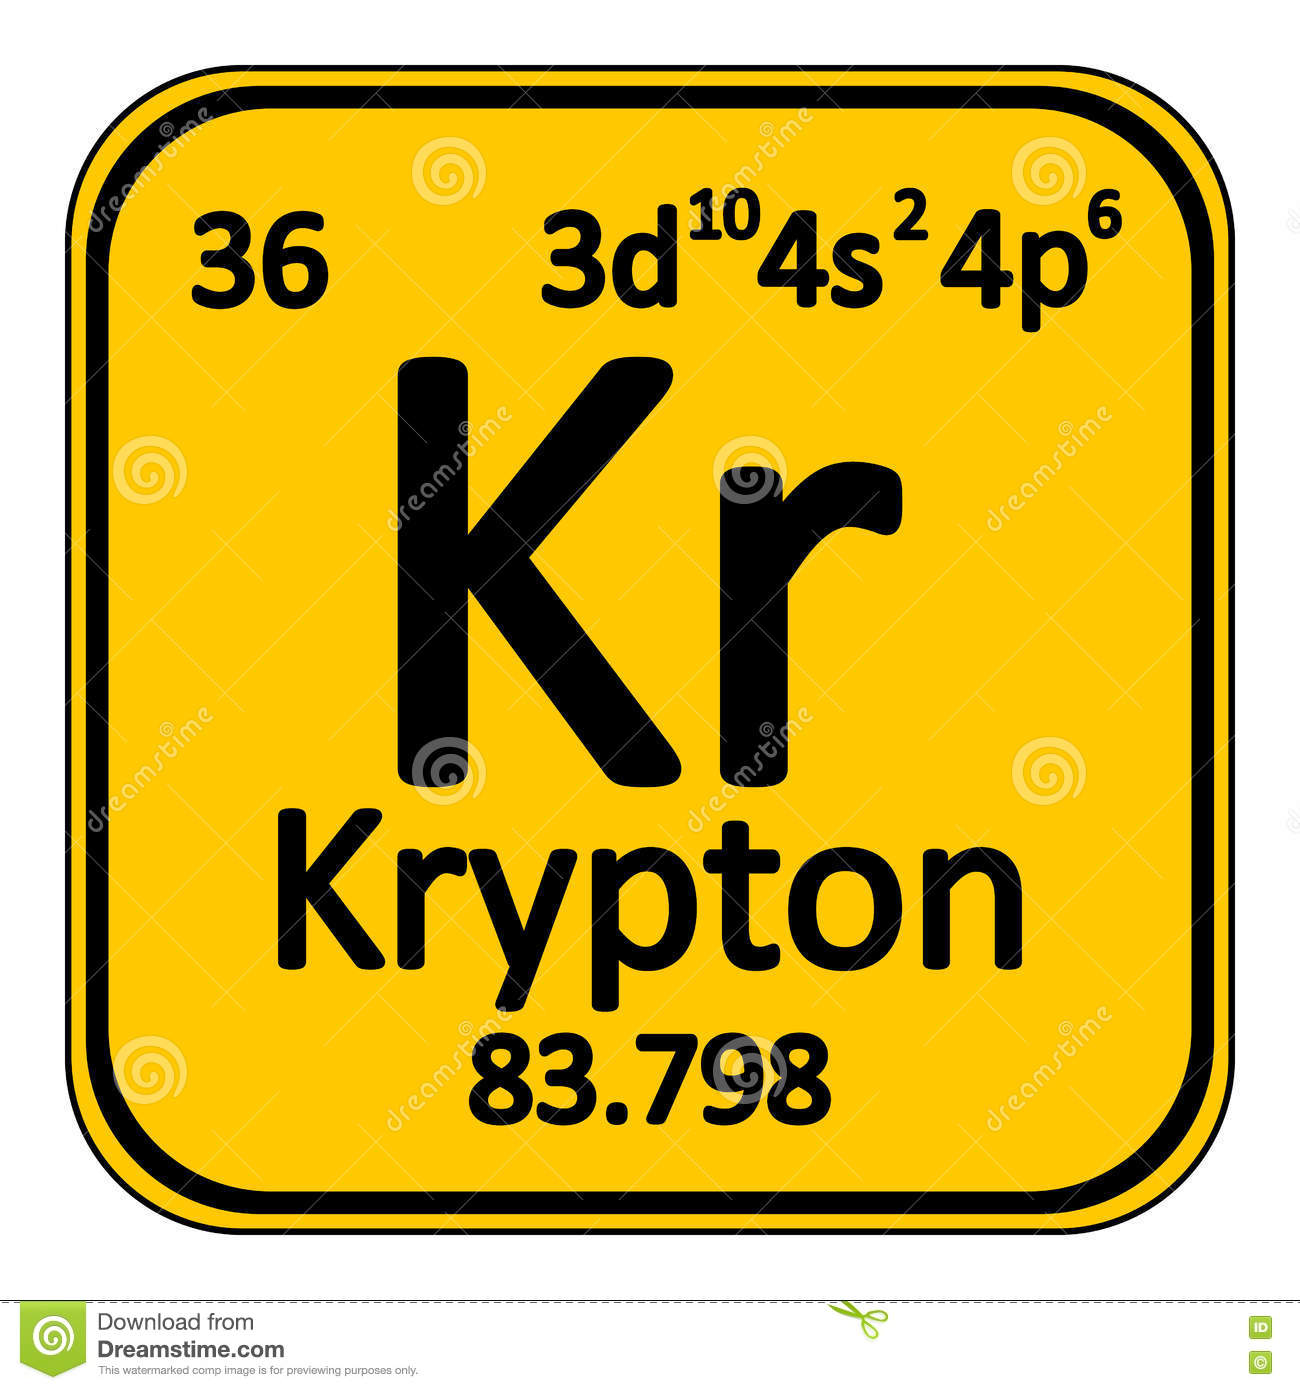 Periodic table element krypton icon stock illustration periodic table element krypton icon buycottarizona